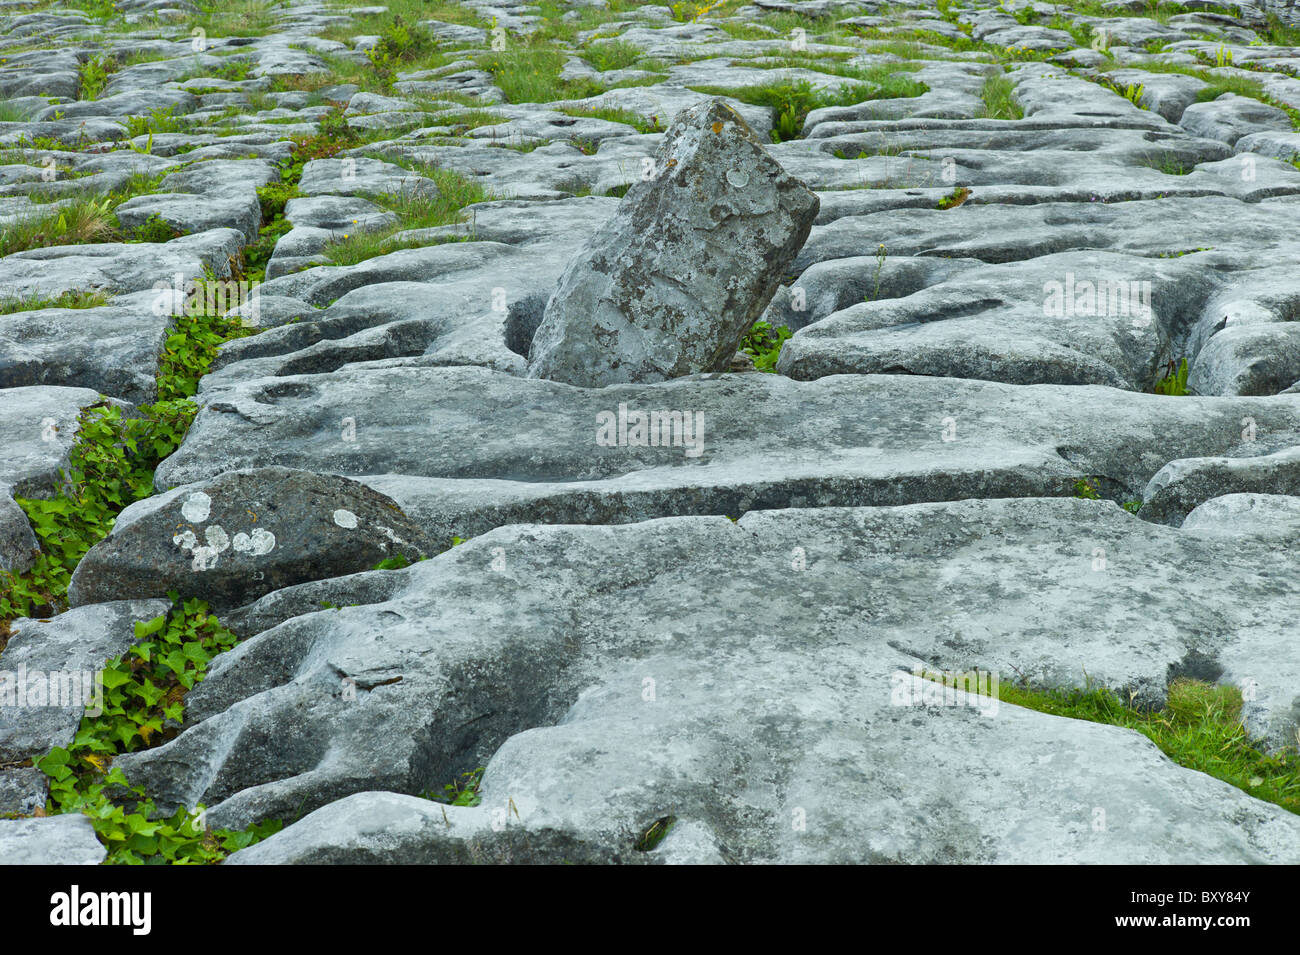 Limestone pavement glaciated karst landscape in The Burren, County Clare, West of Ireland - Stock Image